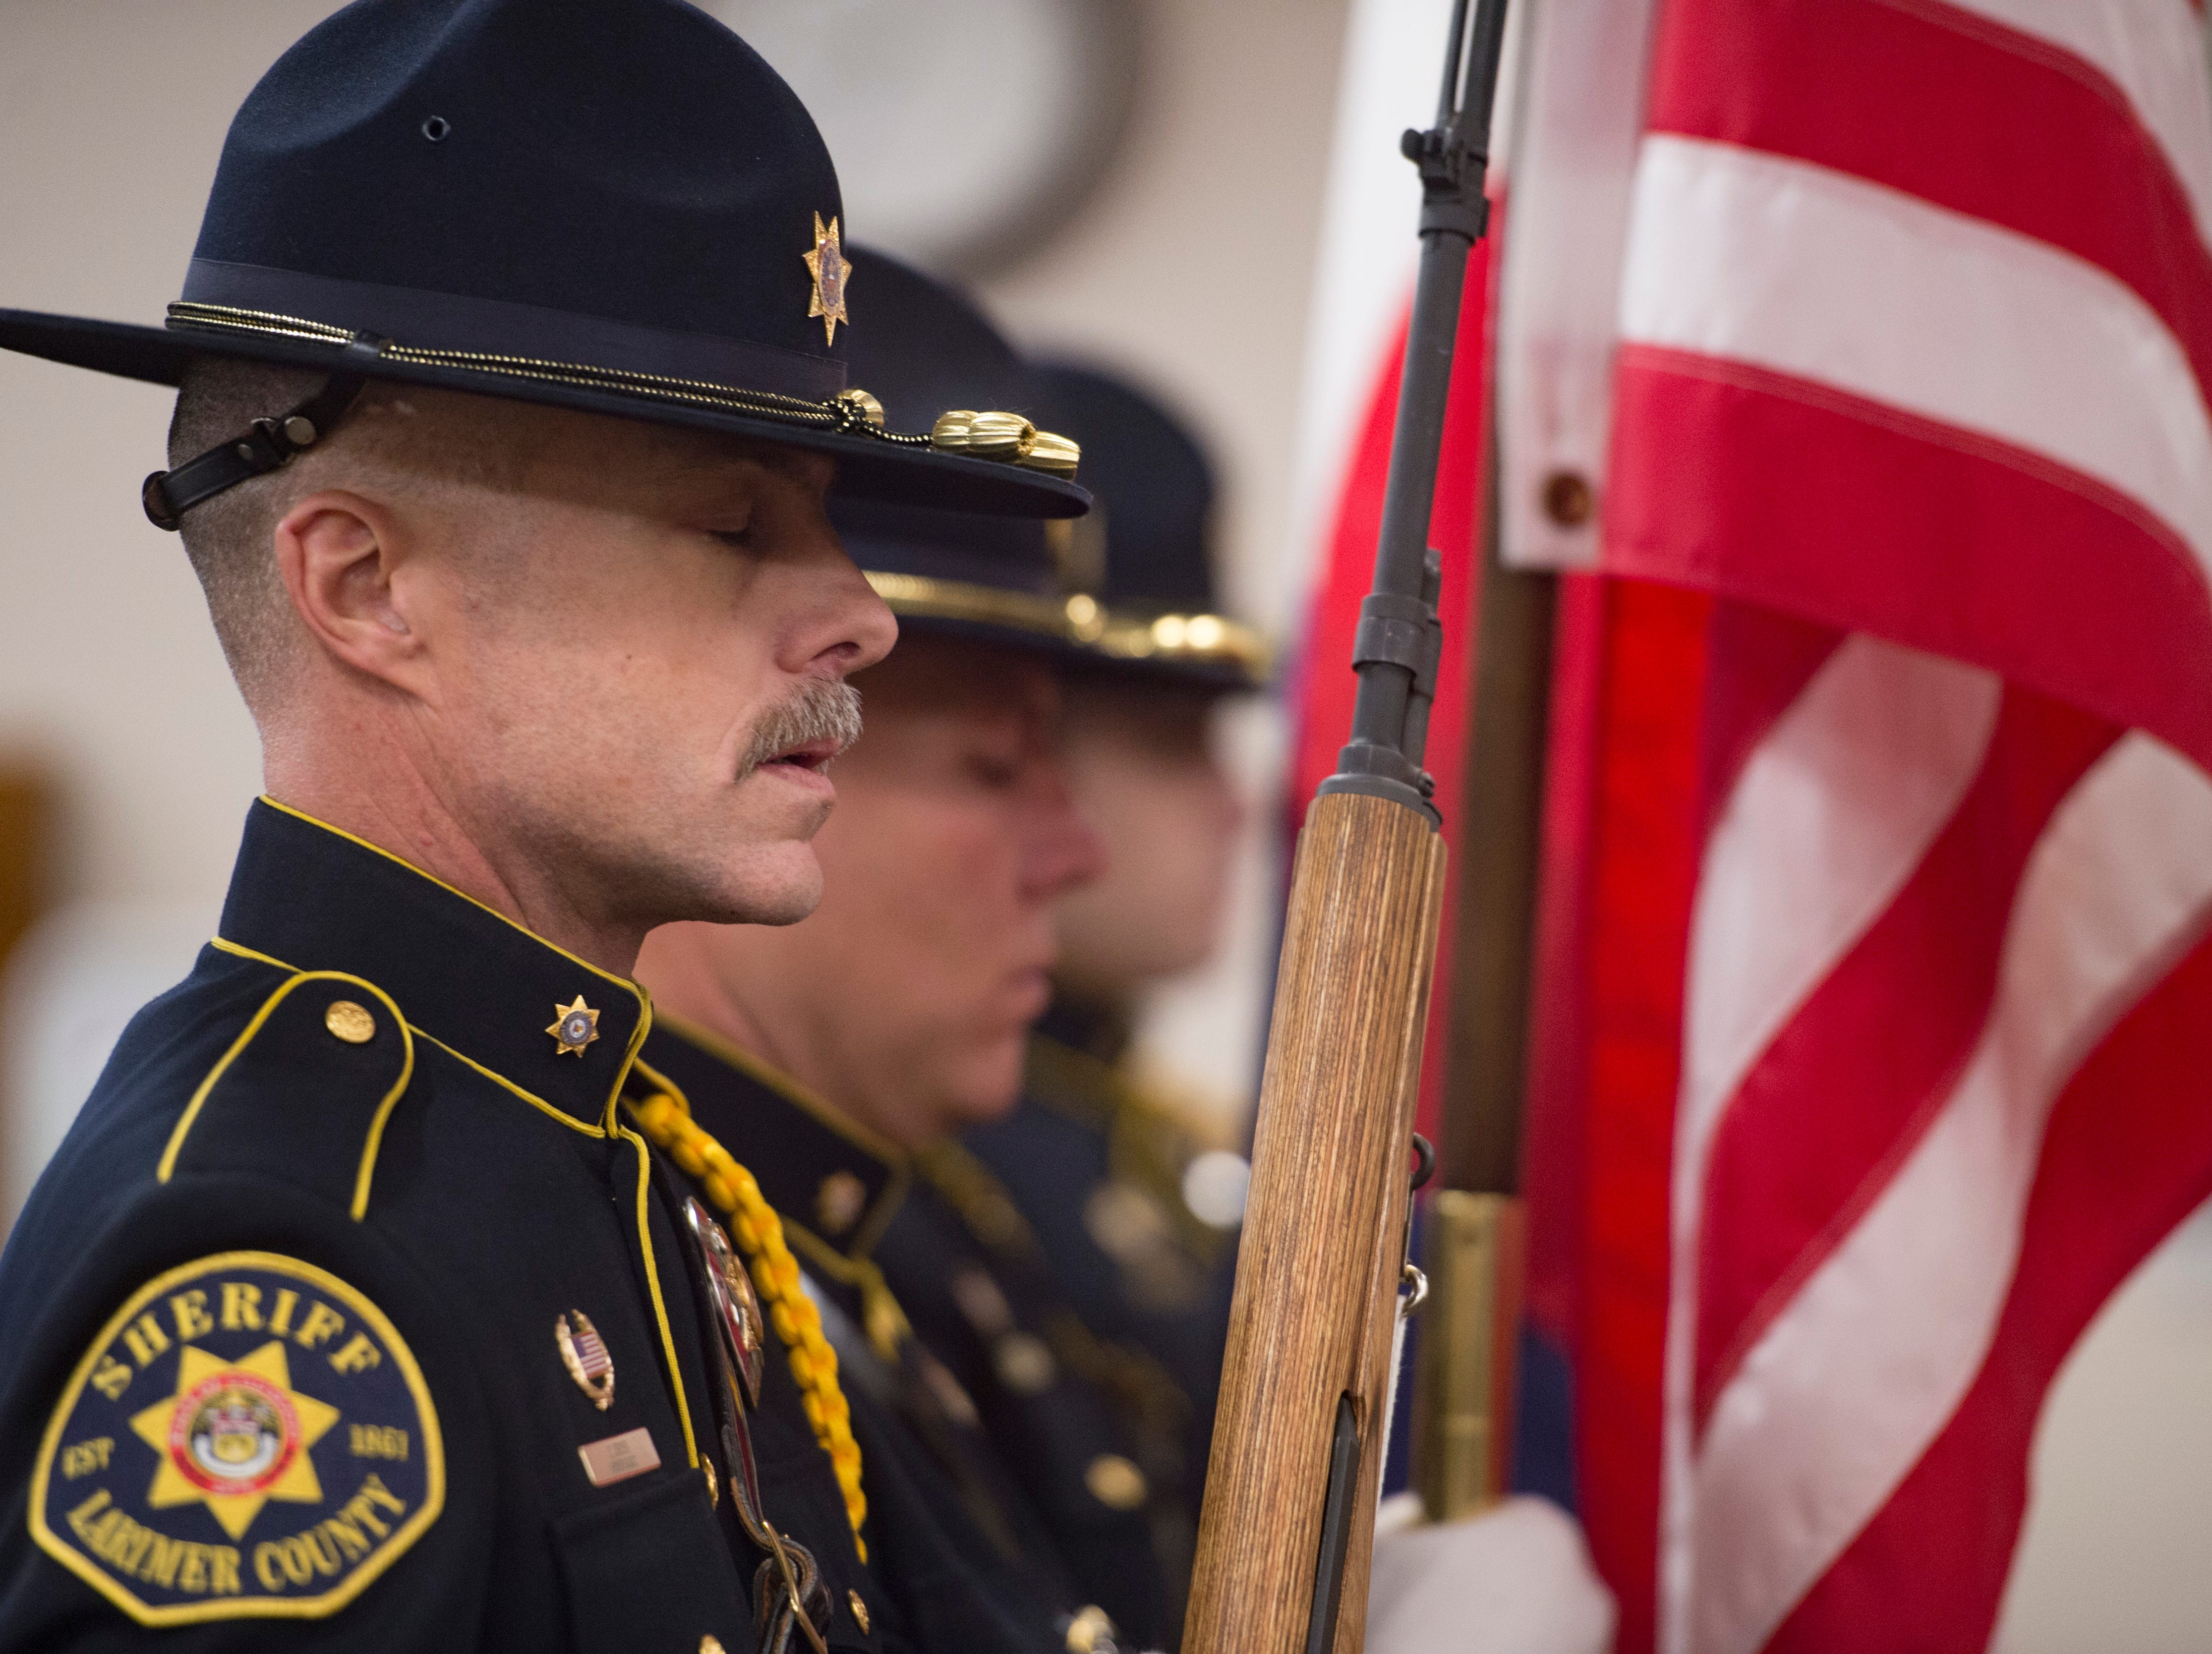 Larimer County Sheriff's Office color guard presents the United States and Colorado state flag before elected officials are sworn in at the Larimer County Courthouse on Tuesday, January 8, 2019.